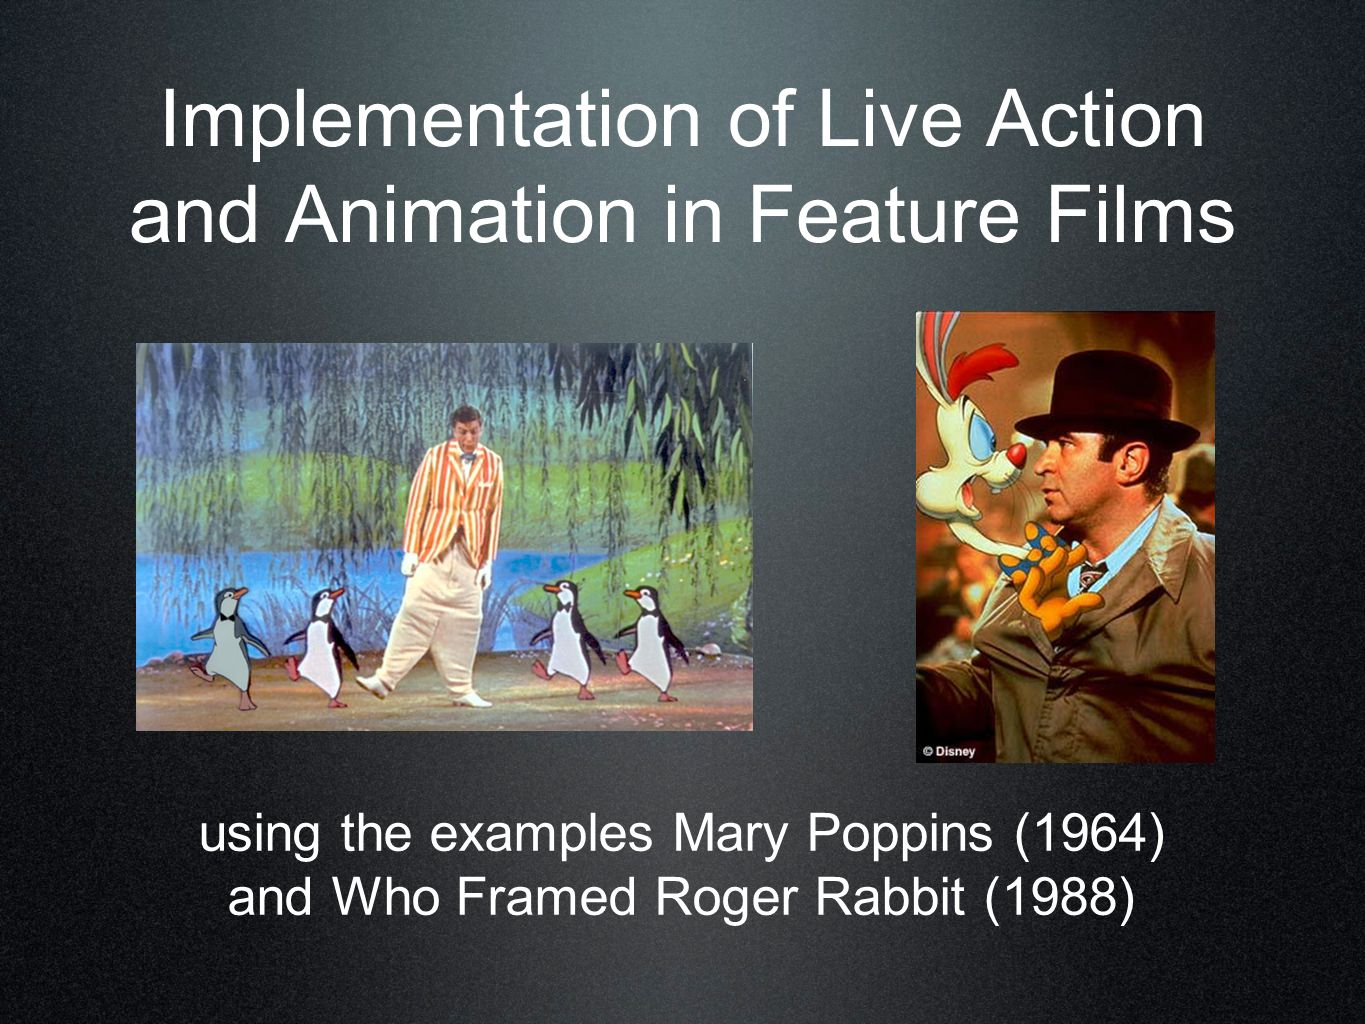 Implementation of Live Action and Animation in Feature Films using the examples Mary Poppins (1964) and Who Framed Roger Rabbit (1988)